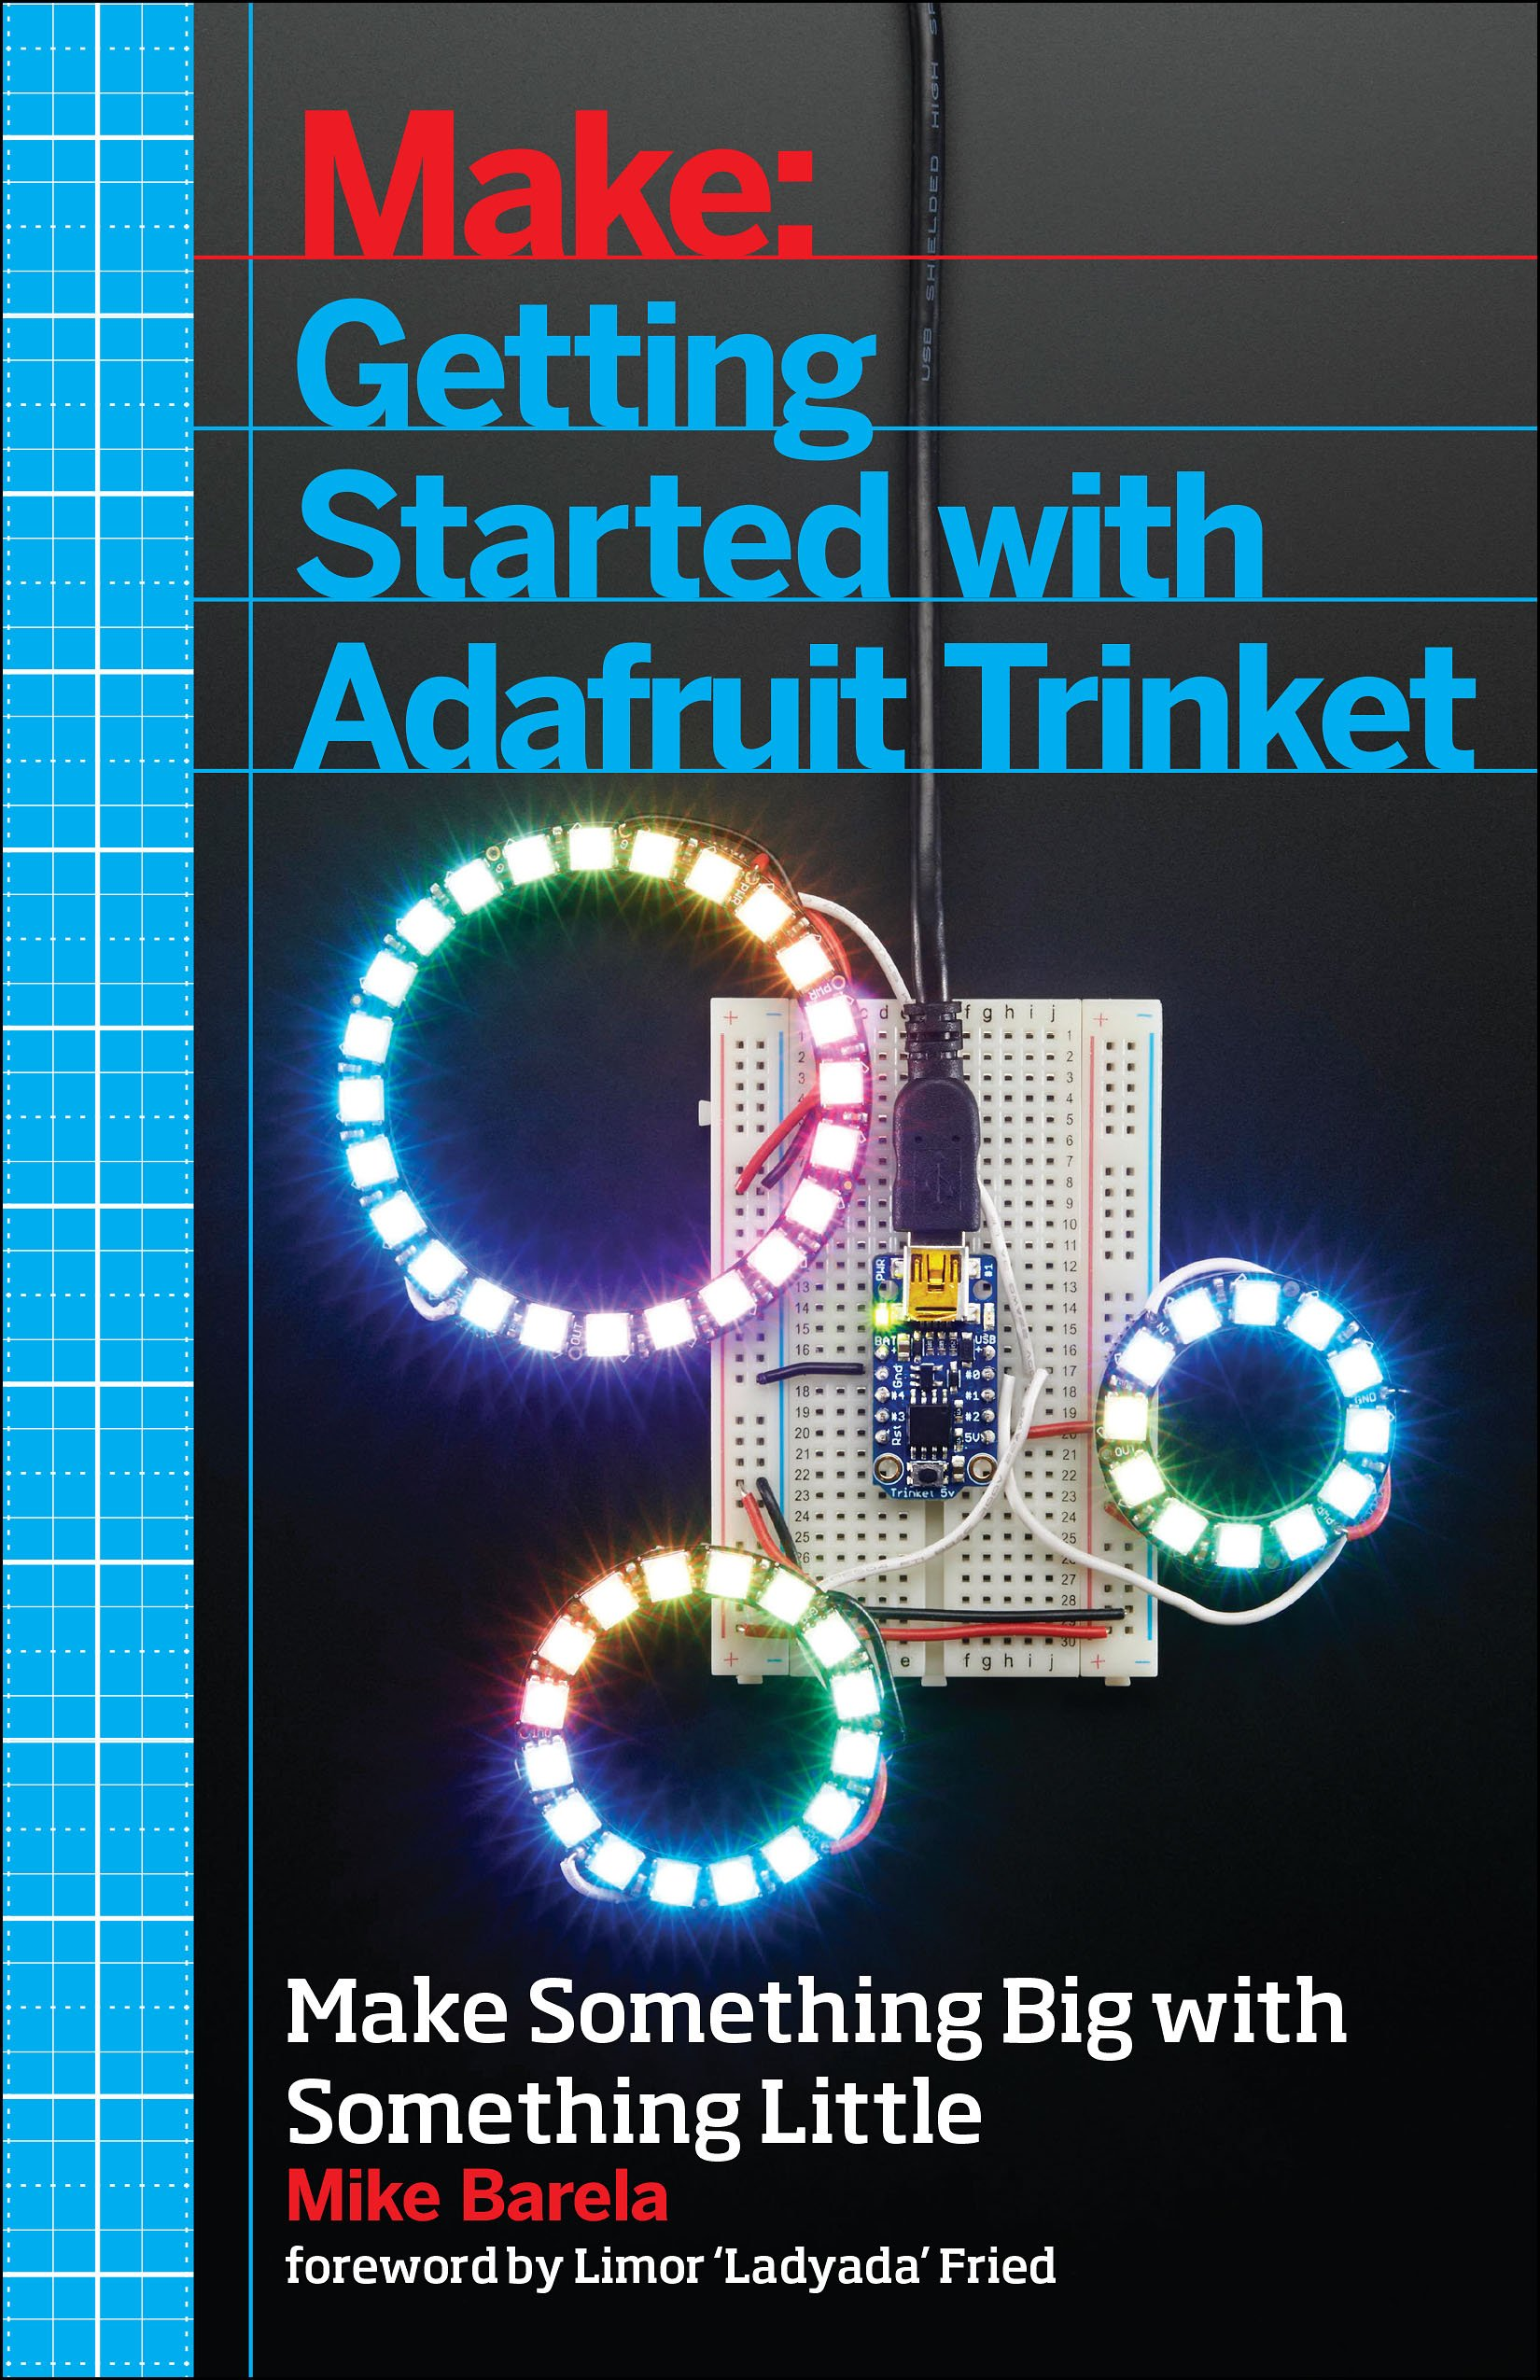 Getting Started with Adafruit Trinket: 15 Projects with the Low-Cost AVR ATtiny85 Board download dree